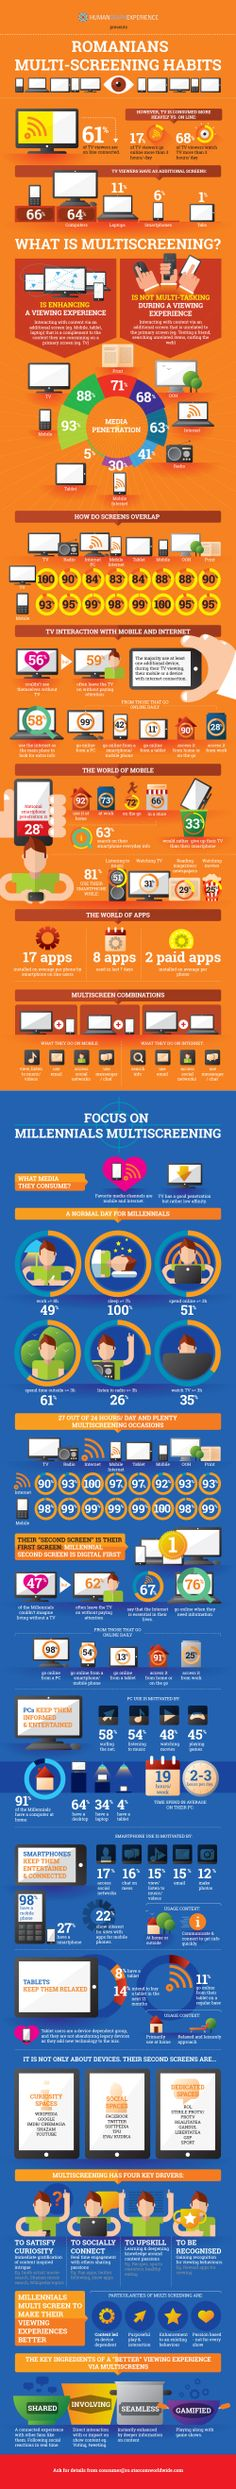 "14th Infographic from HumanGraphExperience - ""Romanians: Multiscreening Habits"""